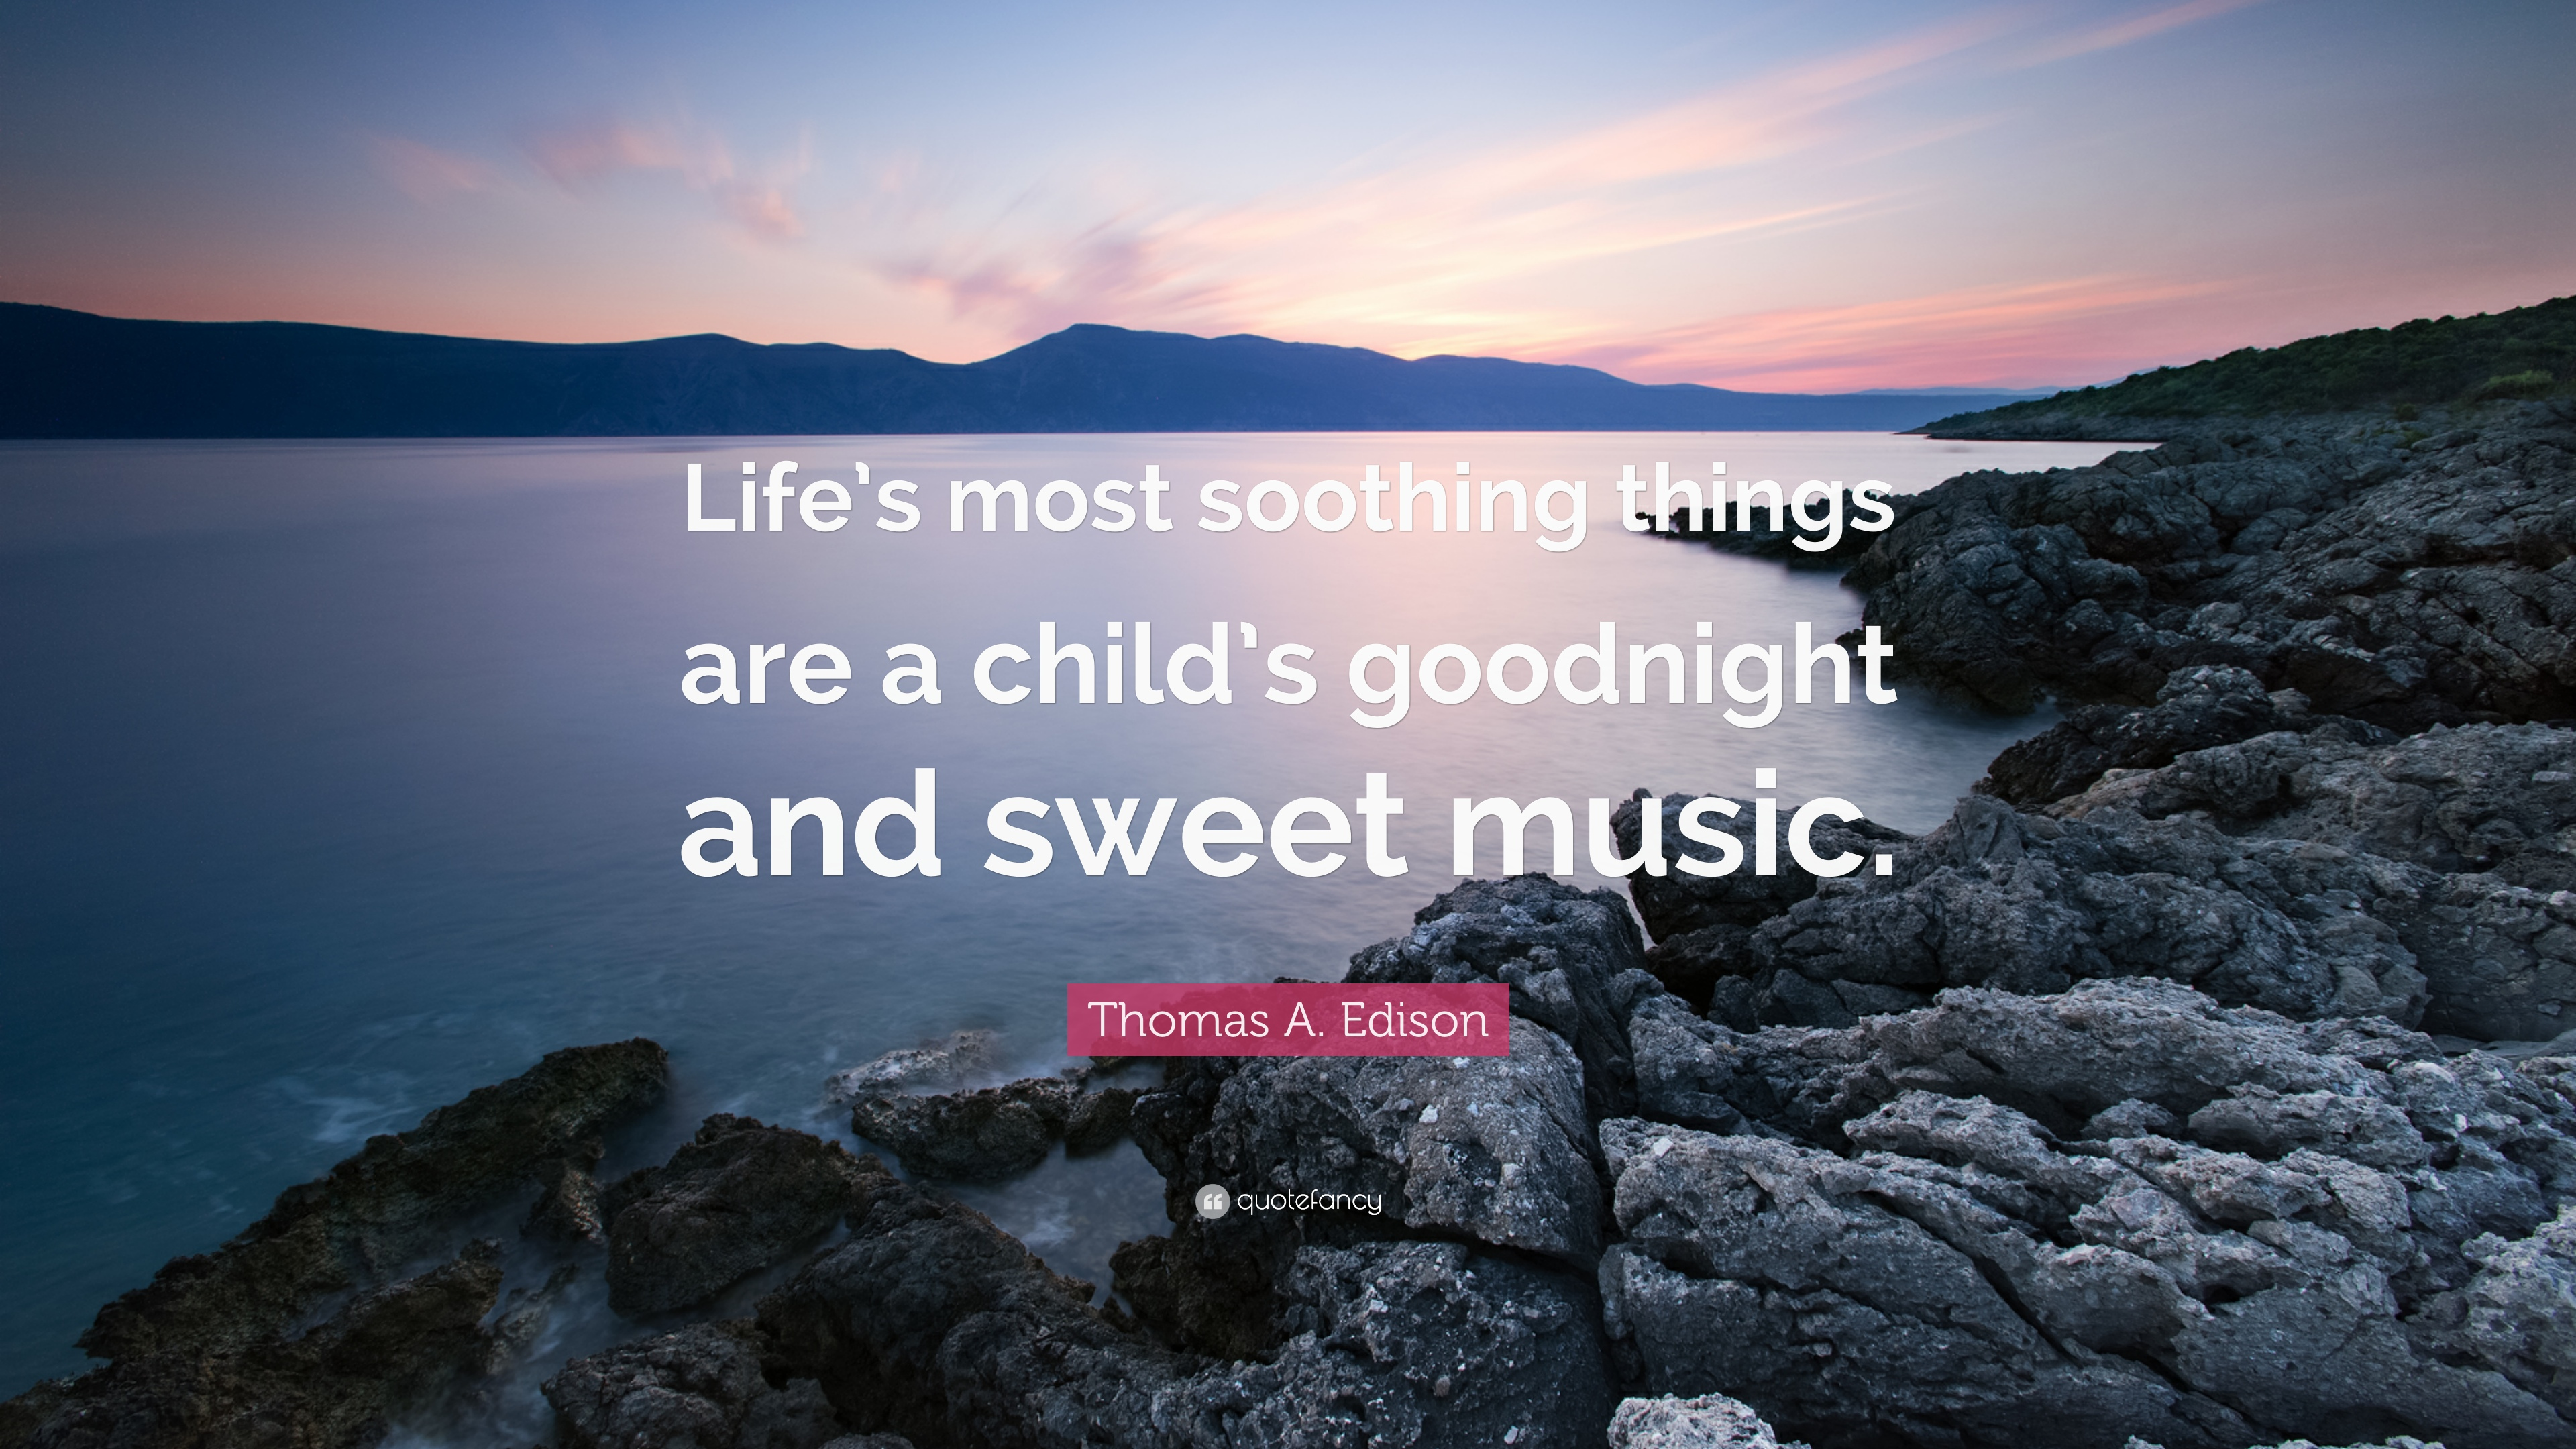 Thomas A Edison Quote Life S Most Soothing Things Are A Child S